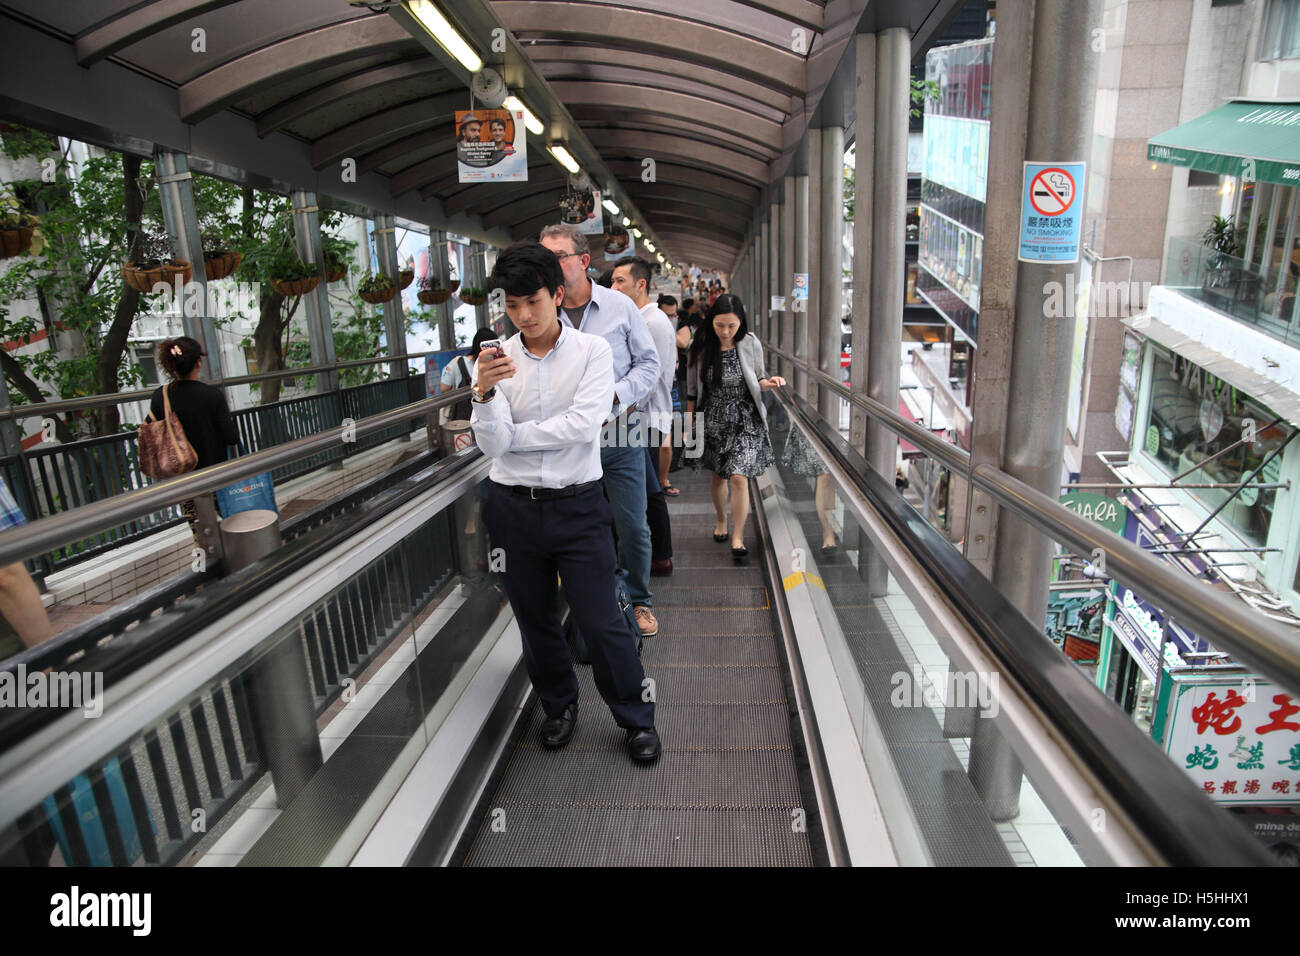 People on an escalator, some stand and use the smartphones others rush by and take over. Central to Mid-Levels escalator - Stock Image